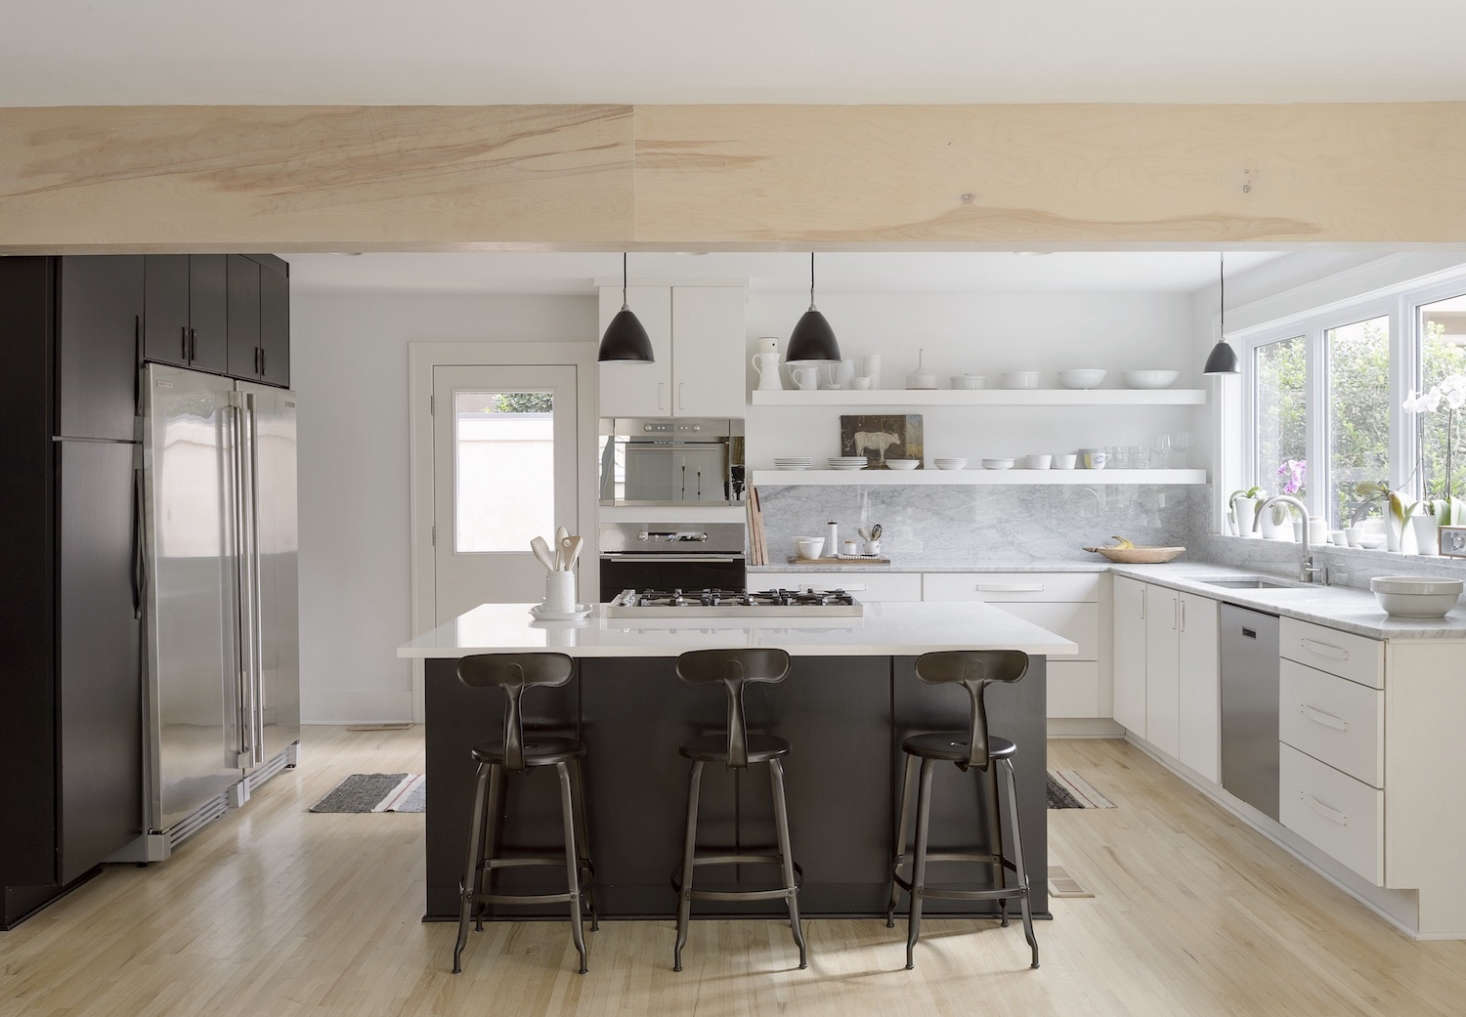 Izabella and Brandon worked with a local kitchen design store on the black and white cabinets; the design was their own. The red oak hardwood floors were bleached three times to achieve the look (for more seeScandi Whitewashed Floors: Before and After). Photograph by Matthew Williams fromBefore & After: Remodelista Contributing Editor Izabella Simmons Shares Her Scandi-Inspired Remodel.